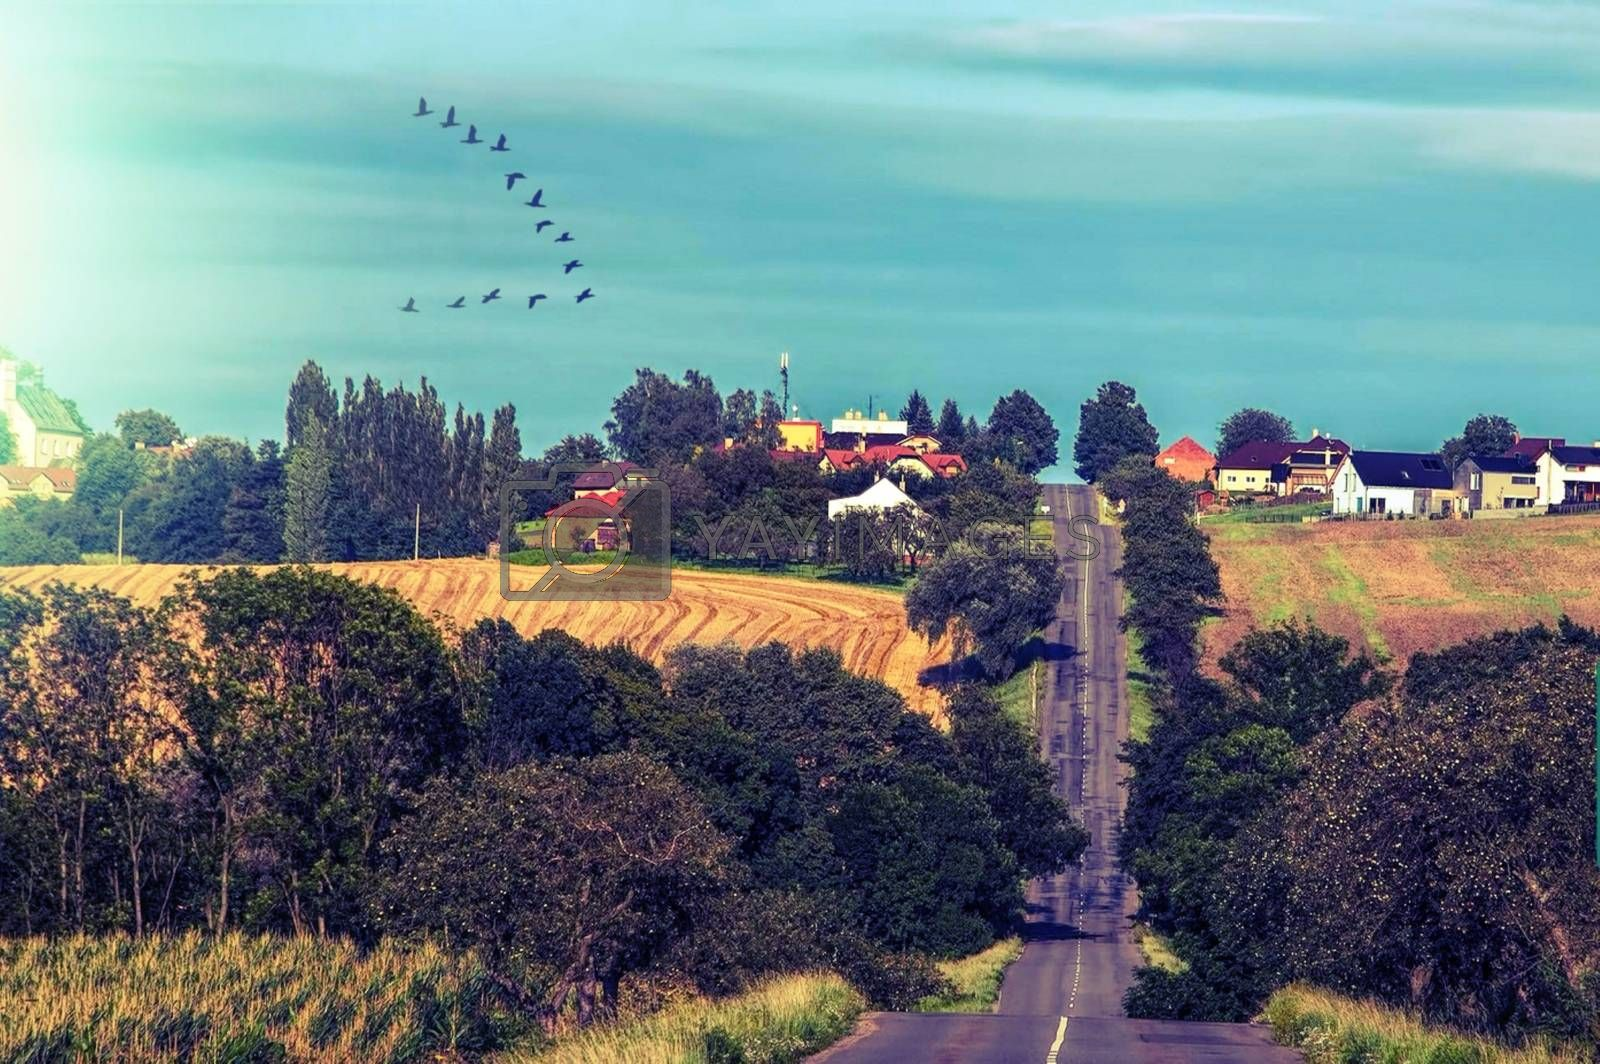 Royalty free image of It seems endless road with the houses in the back and the birds by balage941